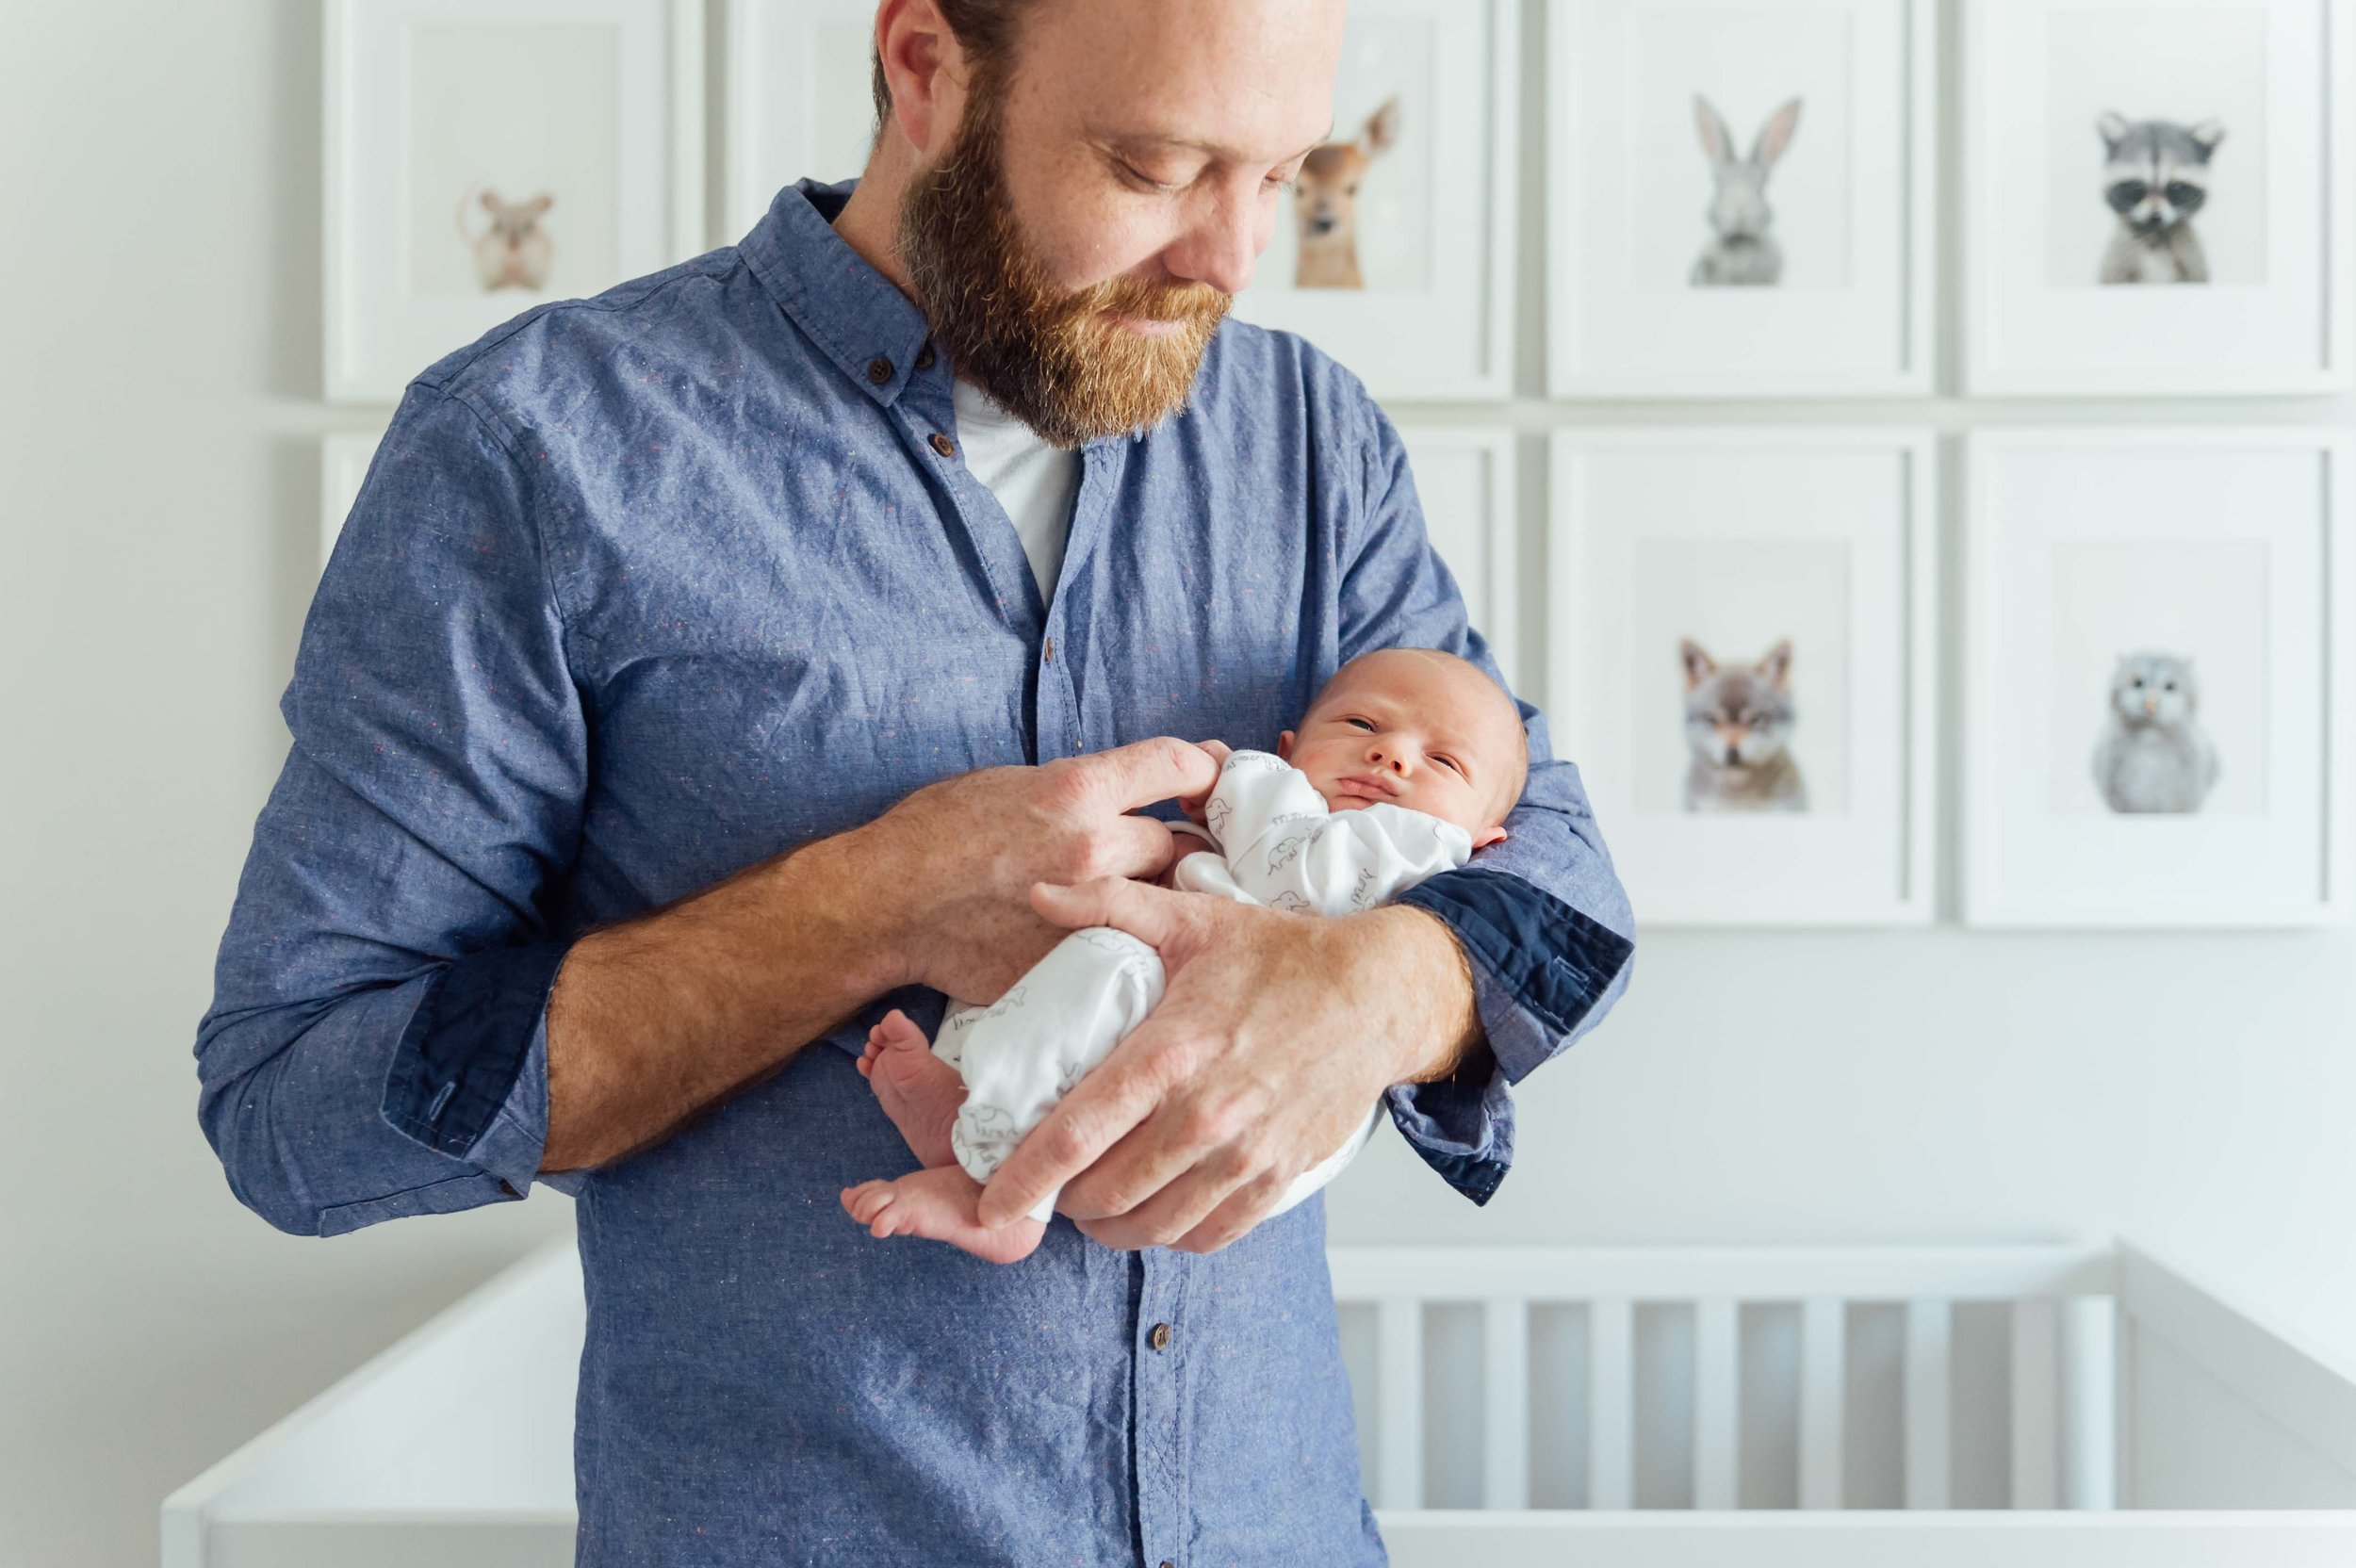 niagara newborn photos - new dad holding baby boy in nursery at home - baby photographer pricing